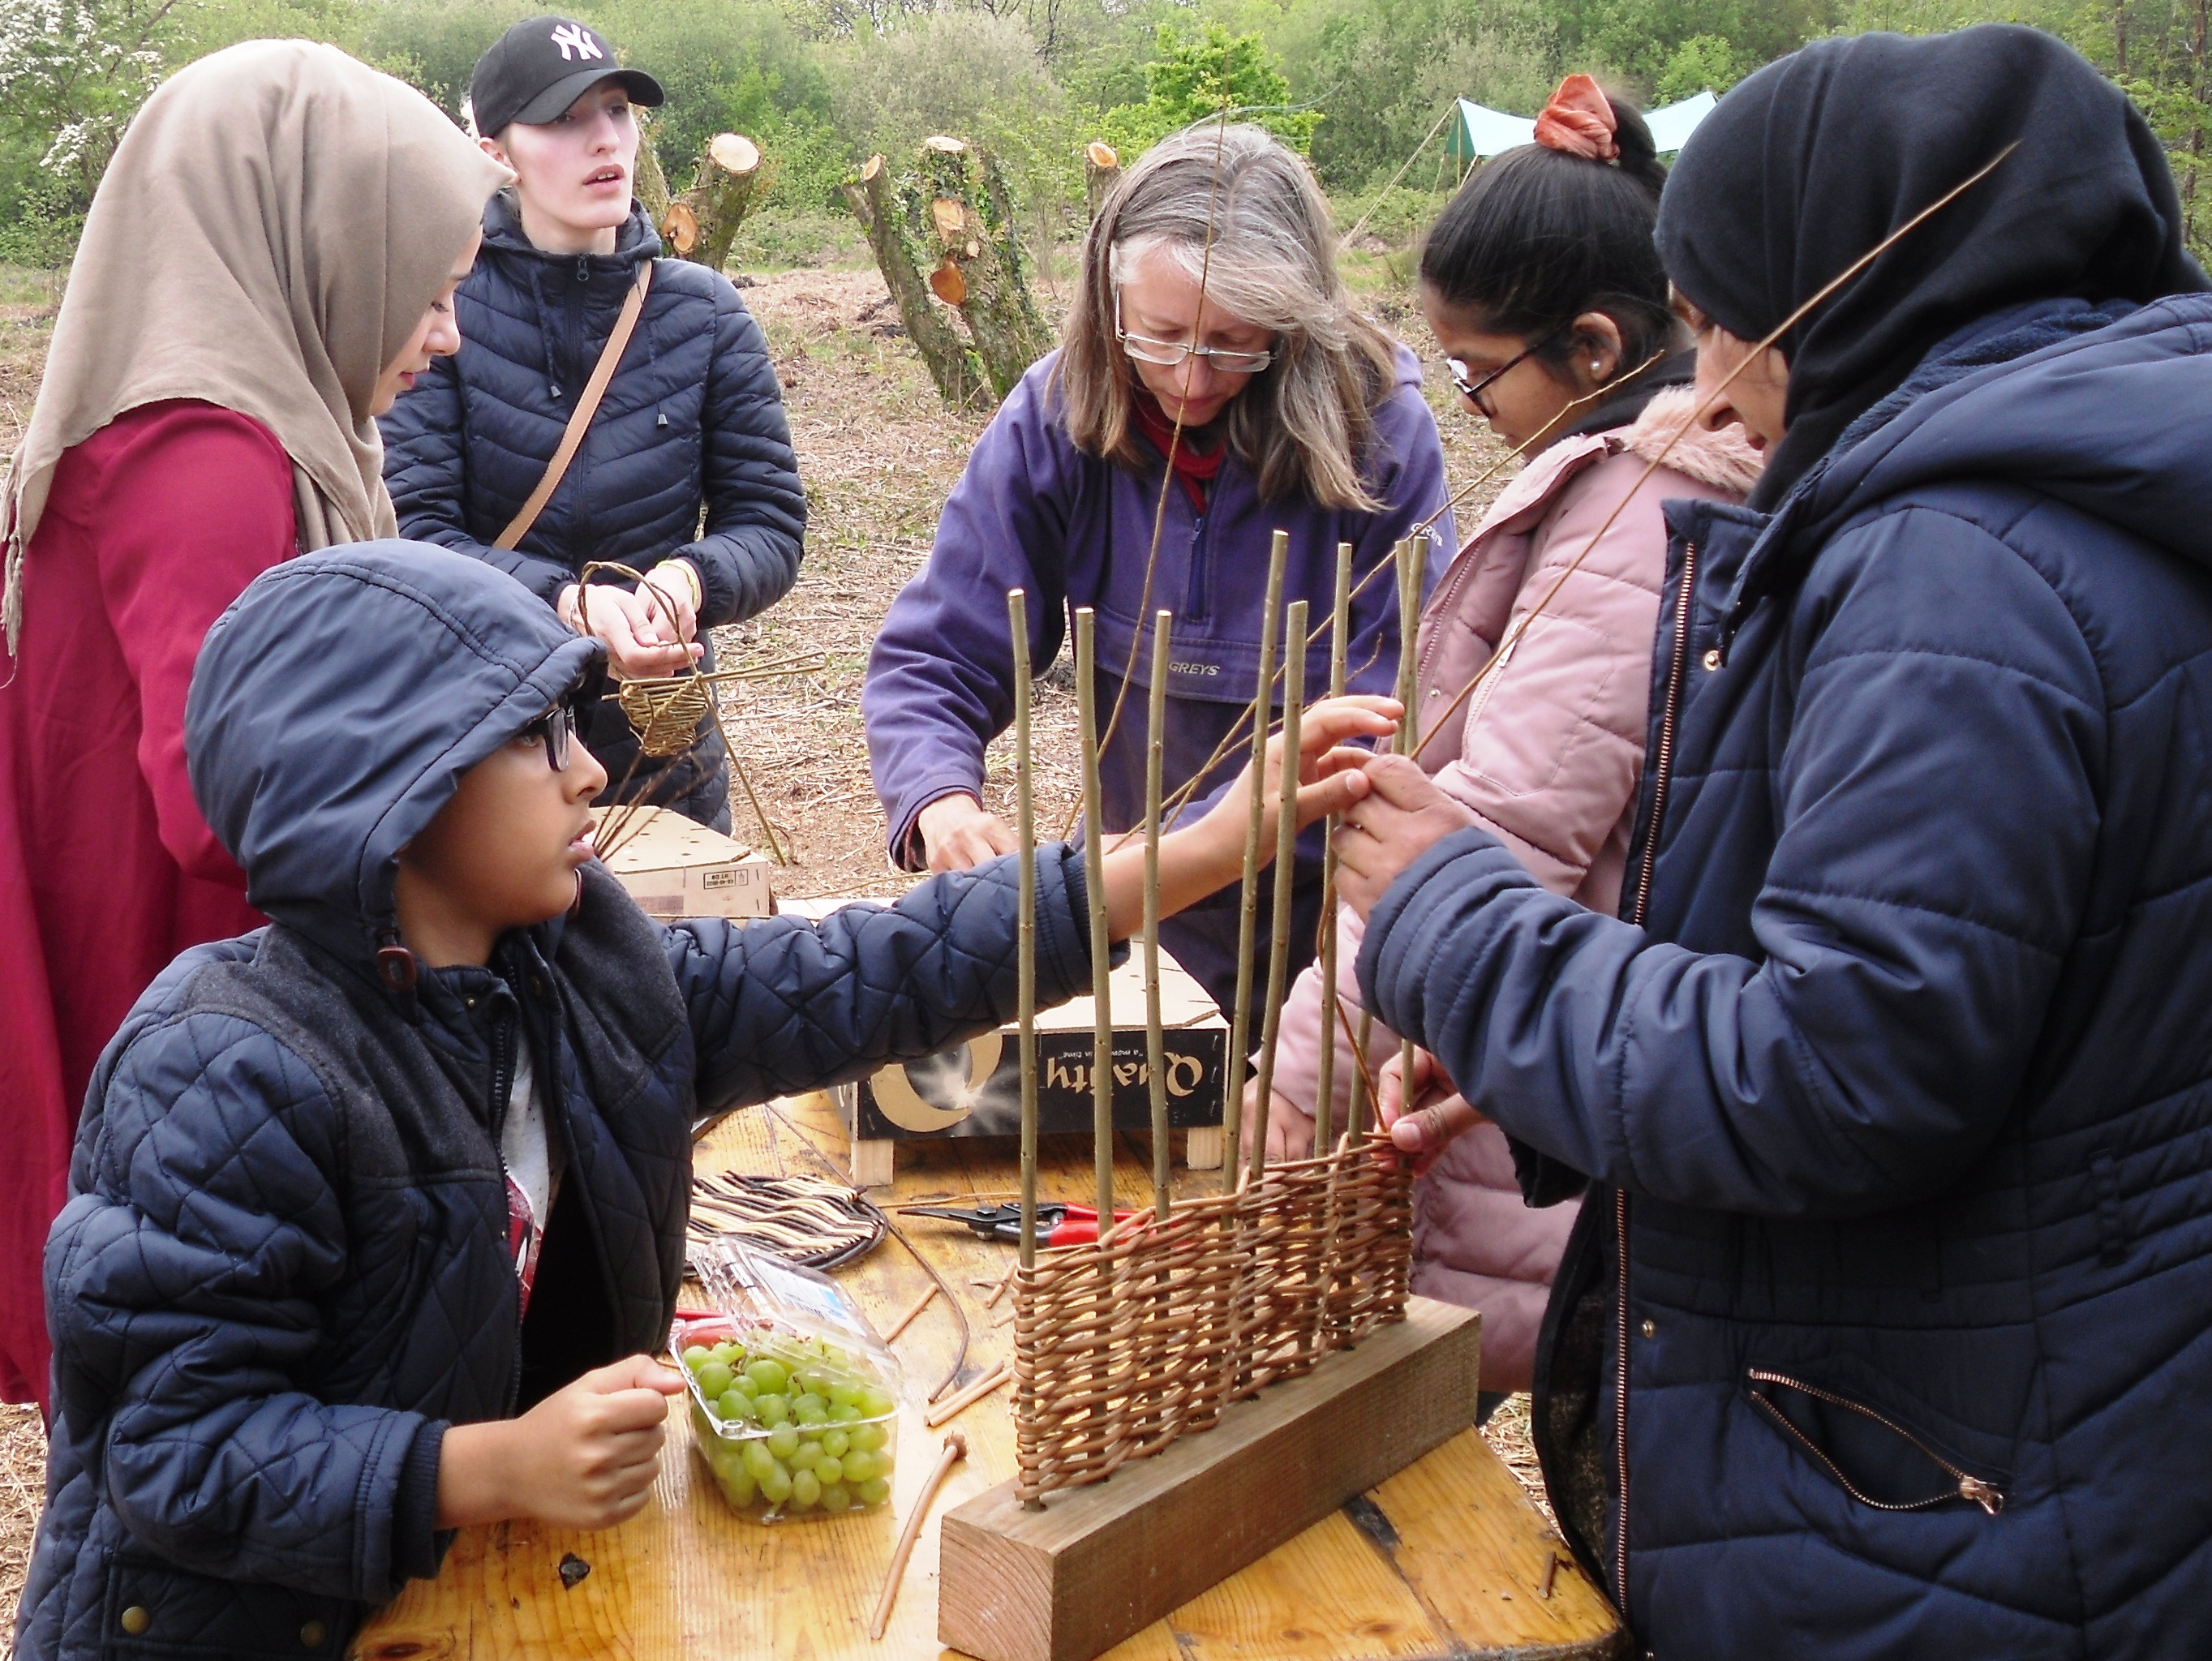 Building the Willow Craft Community: Skills Sessions in May